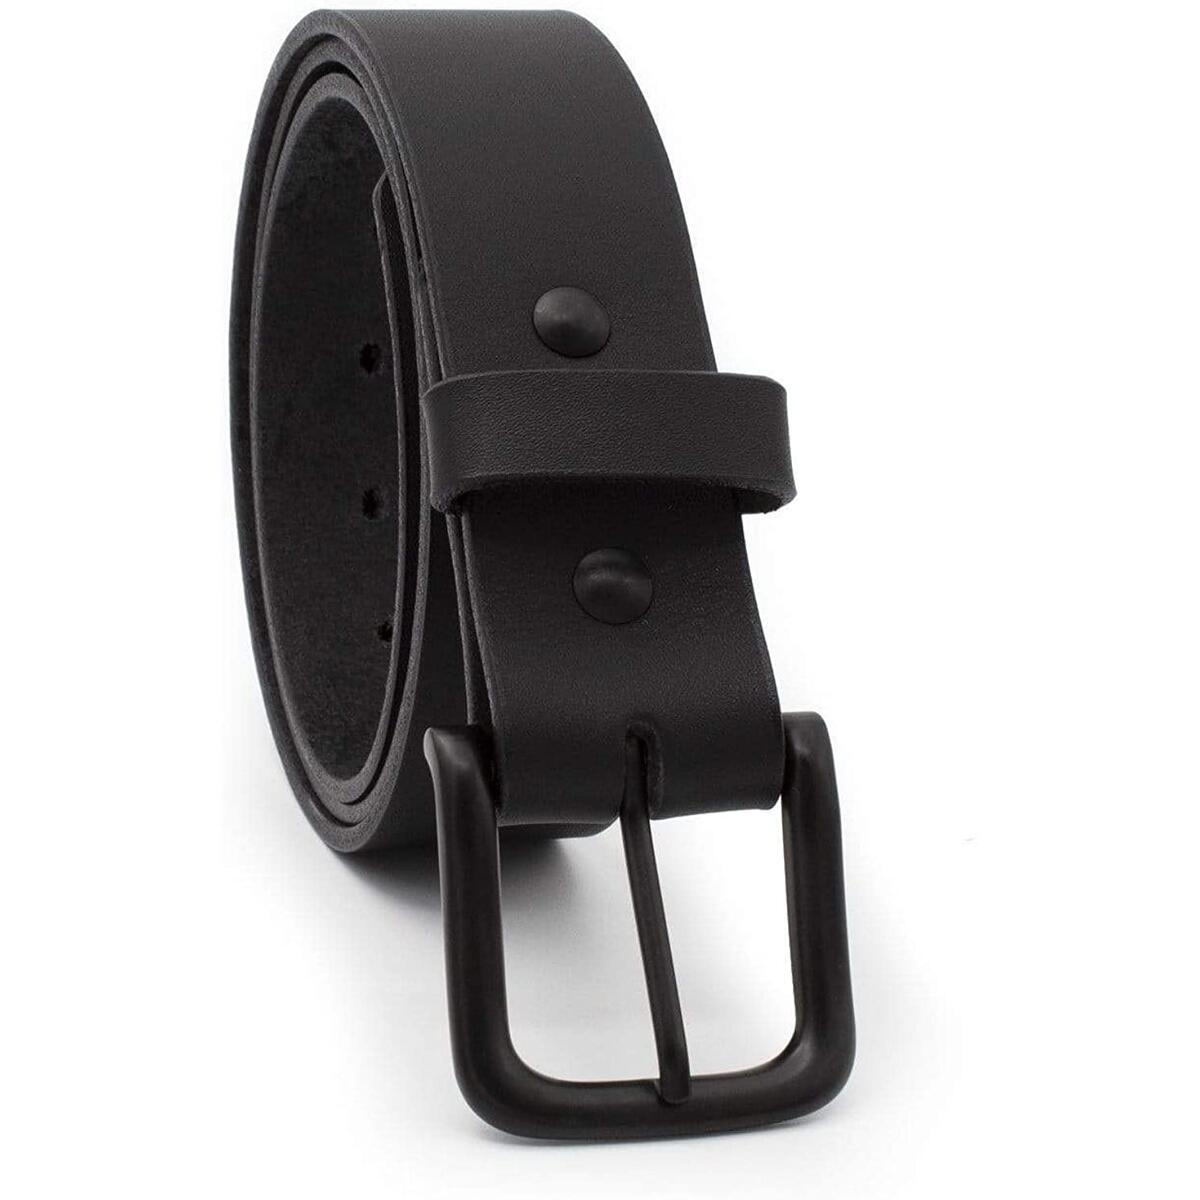 The Huntsman - Full Grain Leather Black Belt - Made in USA [ALL SIZES ELIGIBLE FOR REBATE]